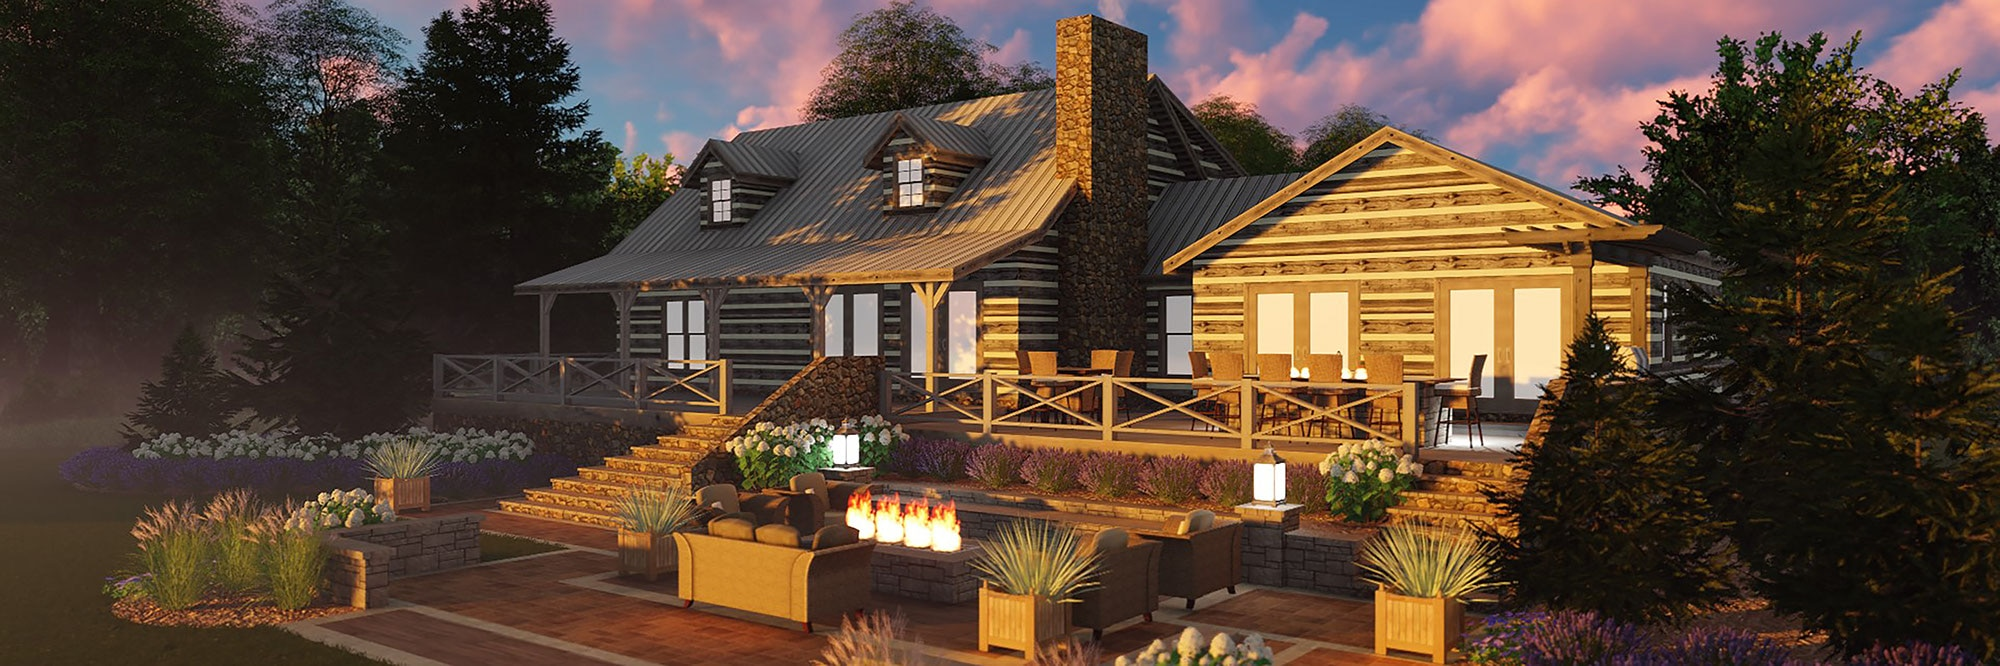 Modern log house with wood deck, large planter boxes, wooden stairs leading to lawn with seating around a firepit.